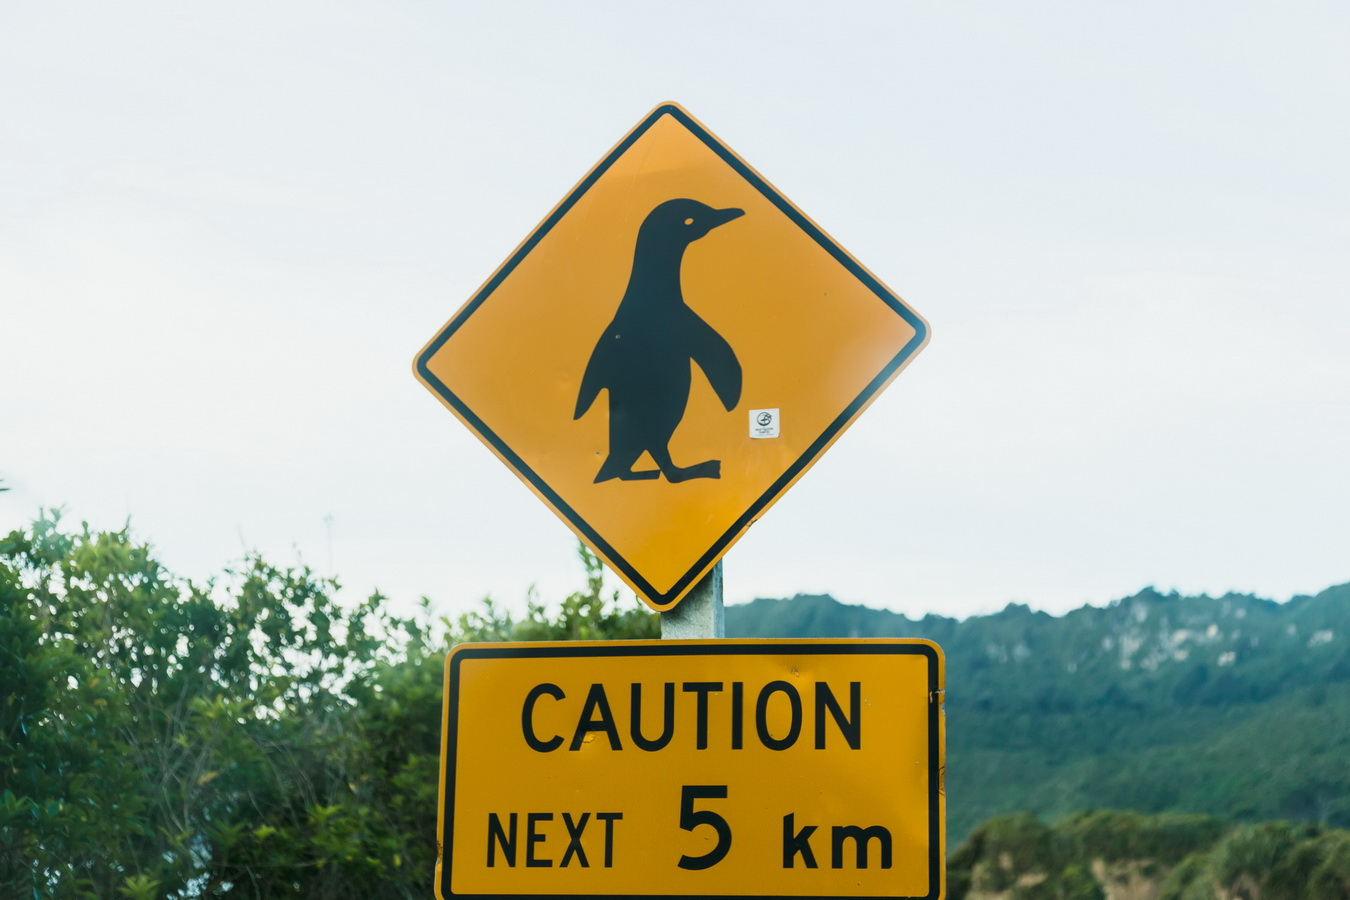 road sign, 5km, penguin crossing,penguin, road, car,road sign, new Zealand